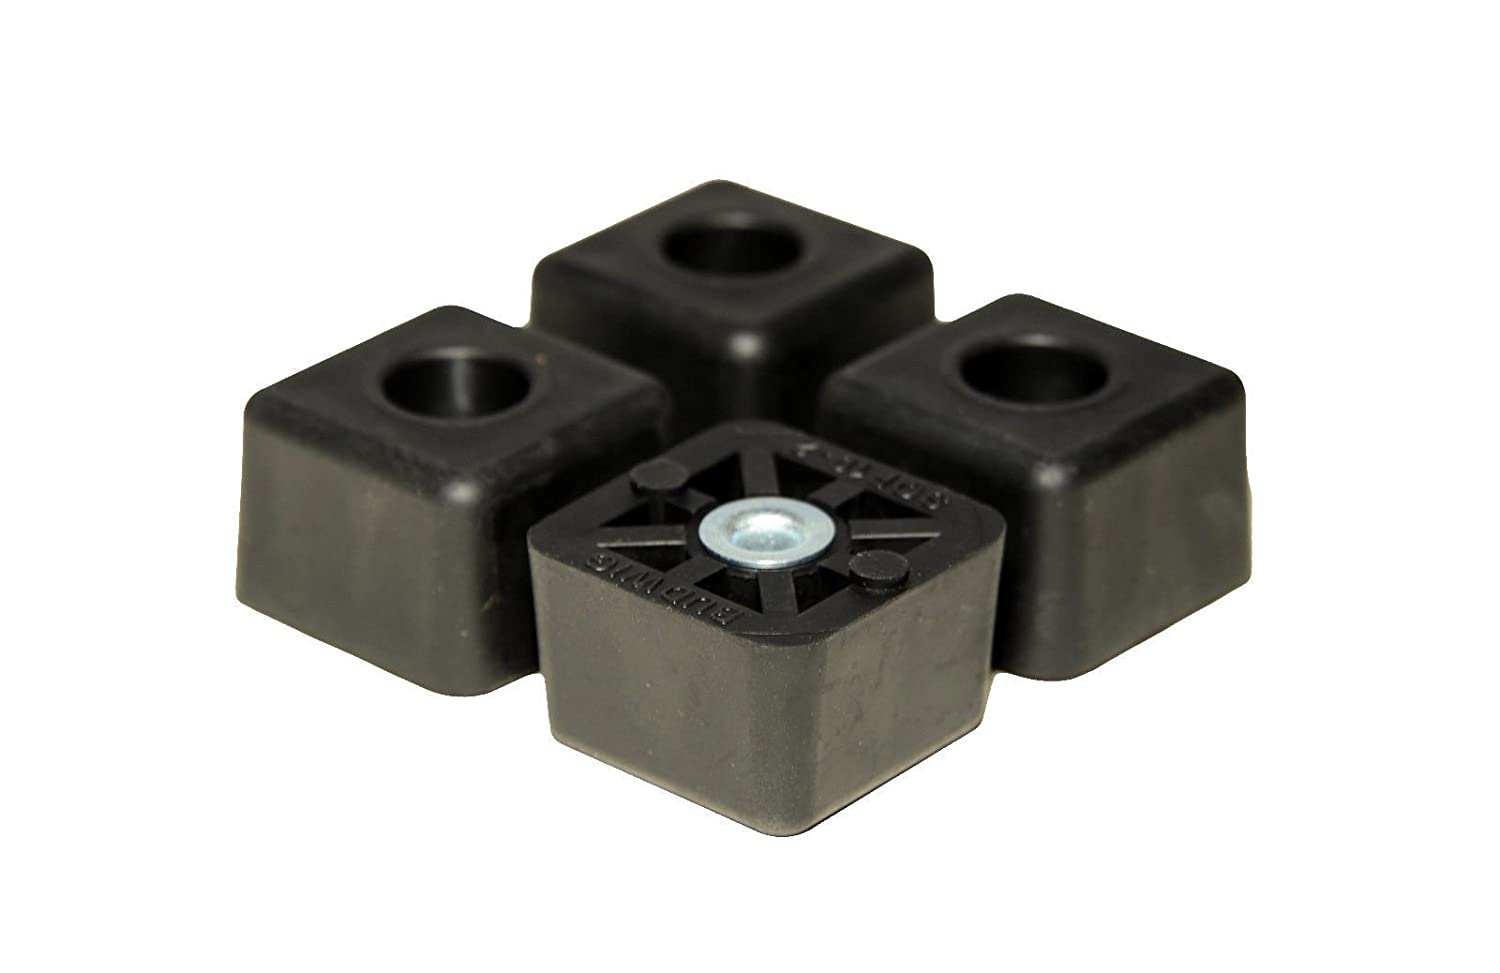 4 Cube Square Rubber Feet Bumpers - .875 H X 1.375 W - Made in USA Heavy Duty Non Marking for Furniture, Tables, Chairs, Desks, Benches, Sofas, Chests, Other Large Items.